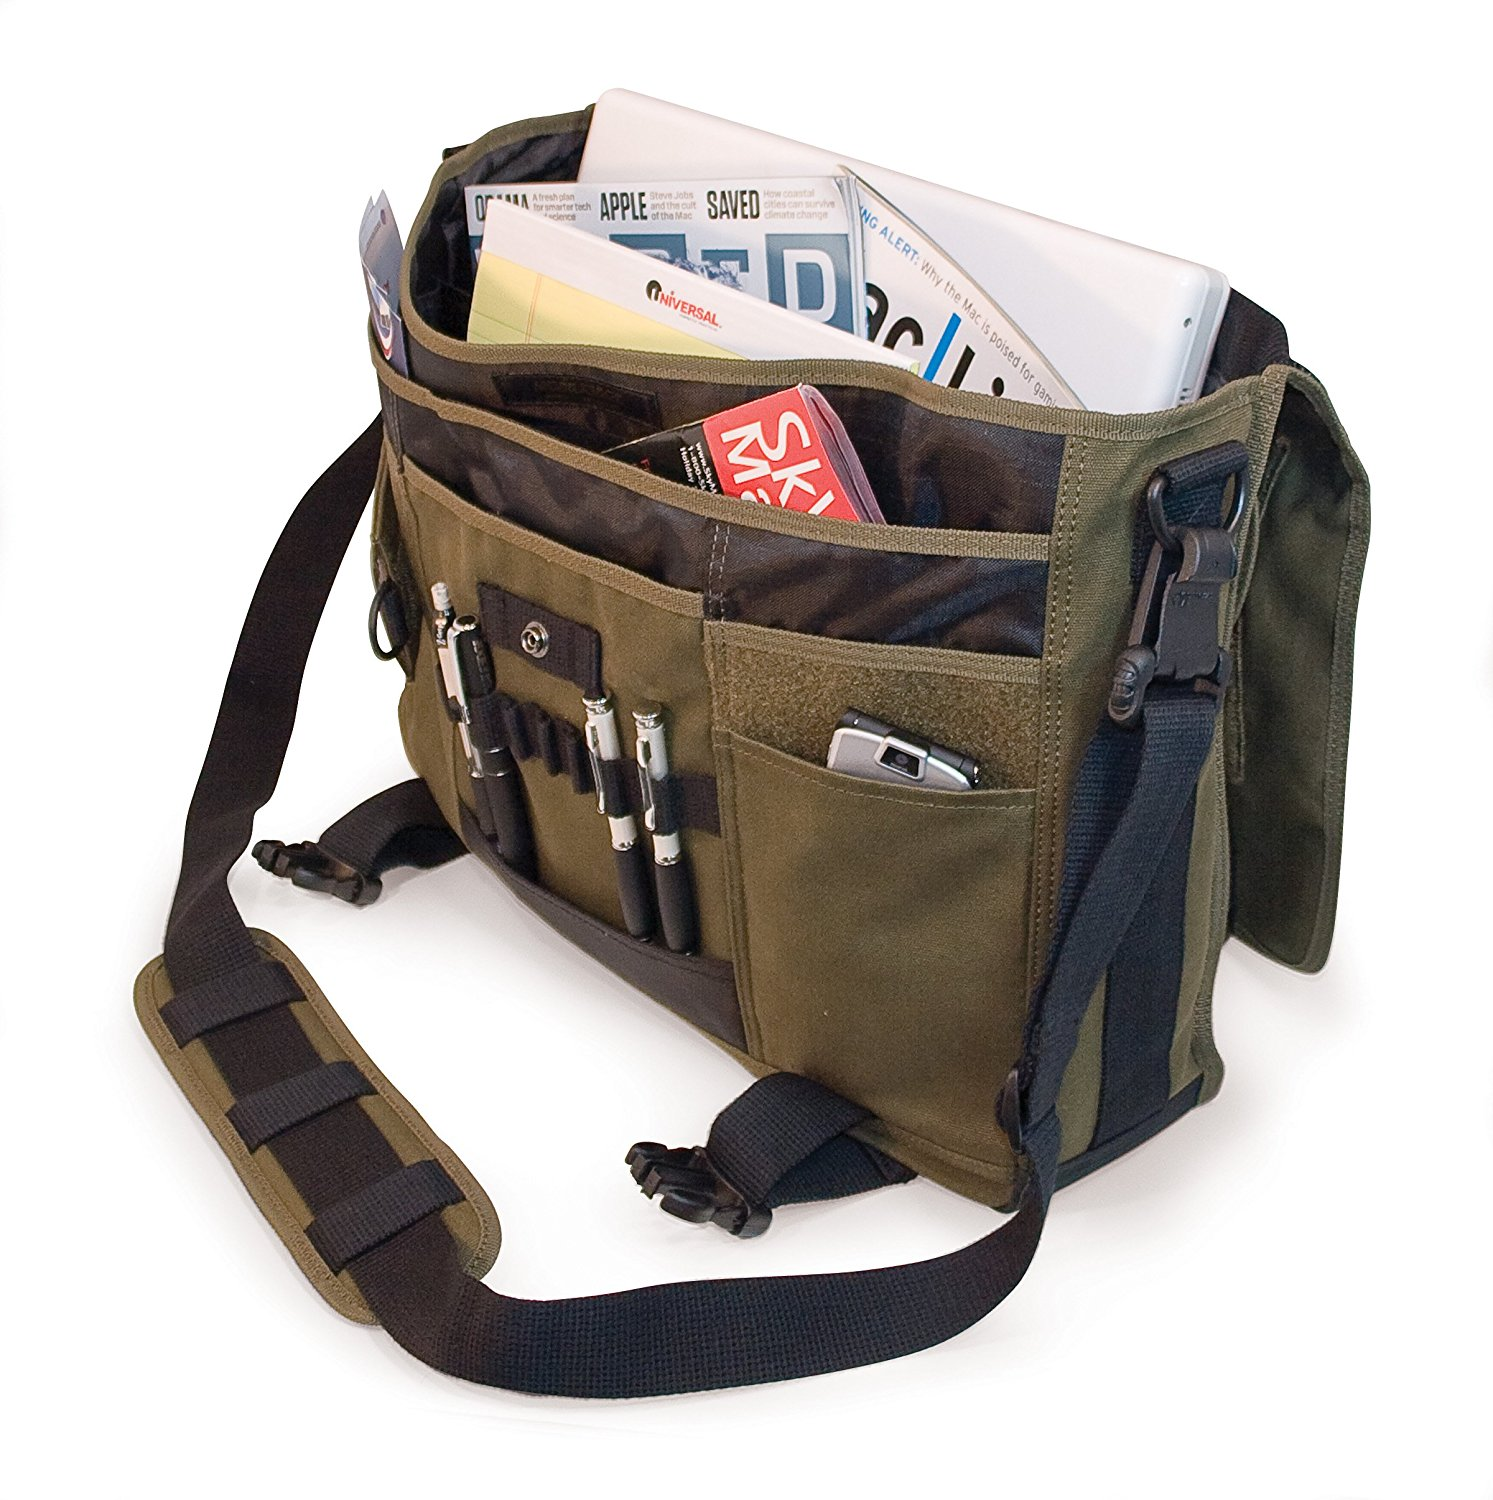 Mobile Edge eco-friendly laptop messenger bag